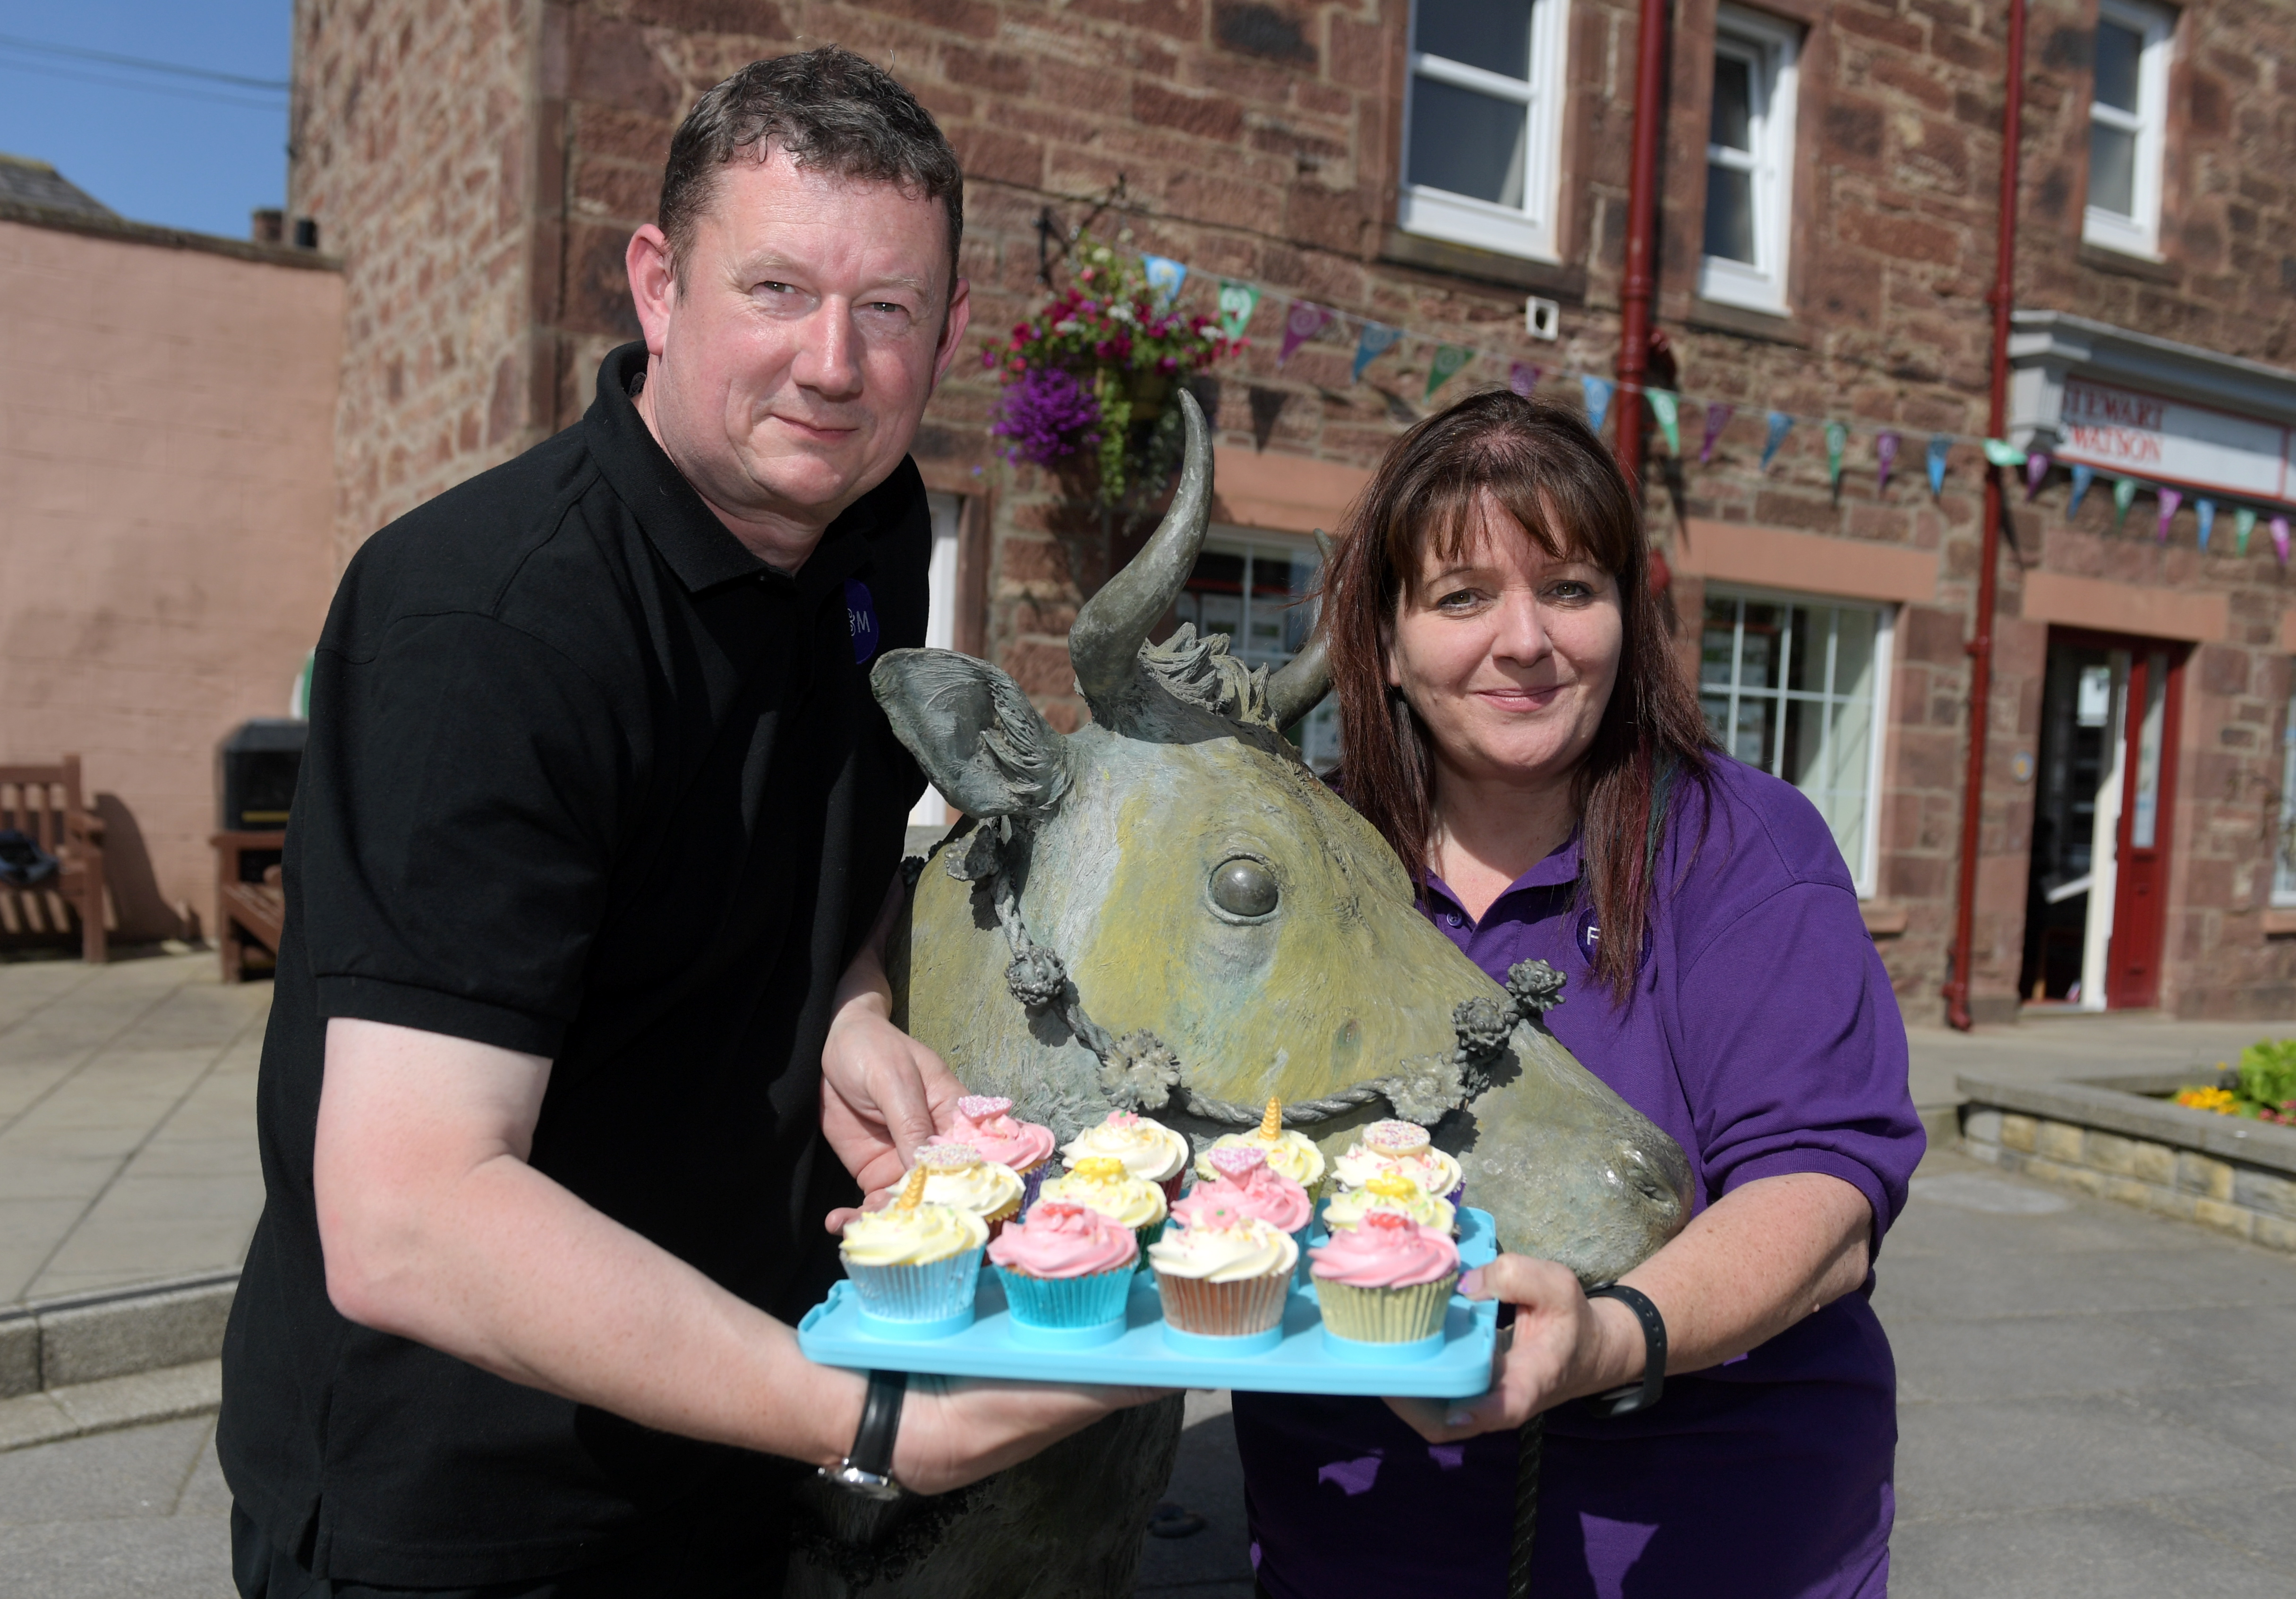 Mike and Samantha Rawlins with their cup cakes.  Picture by Kath Flannery